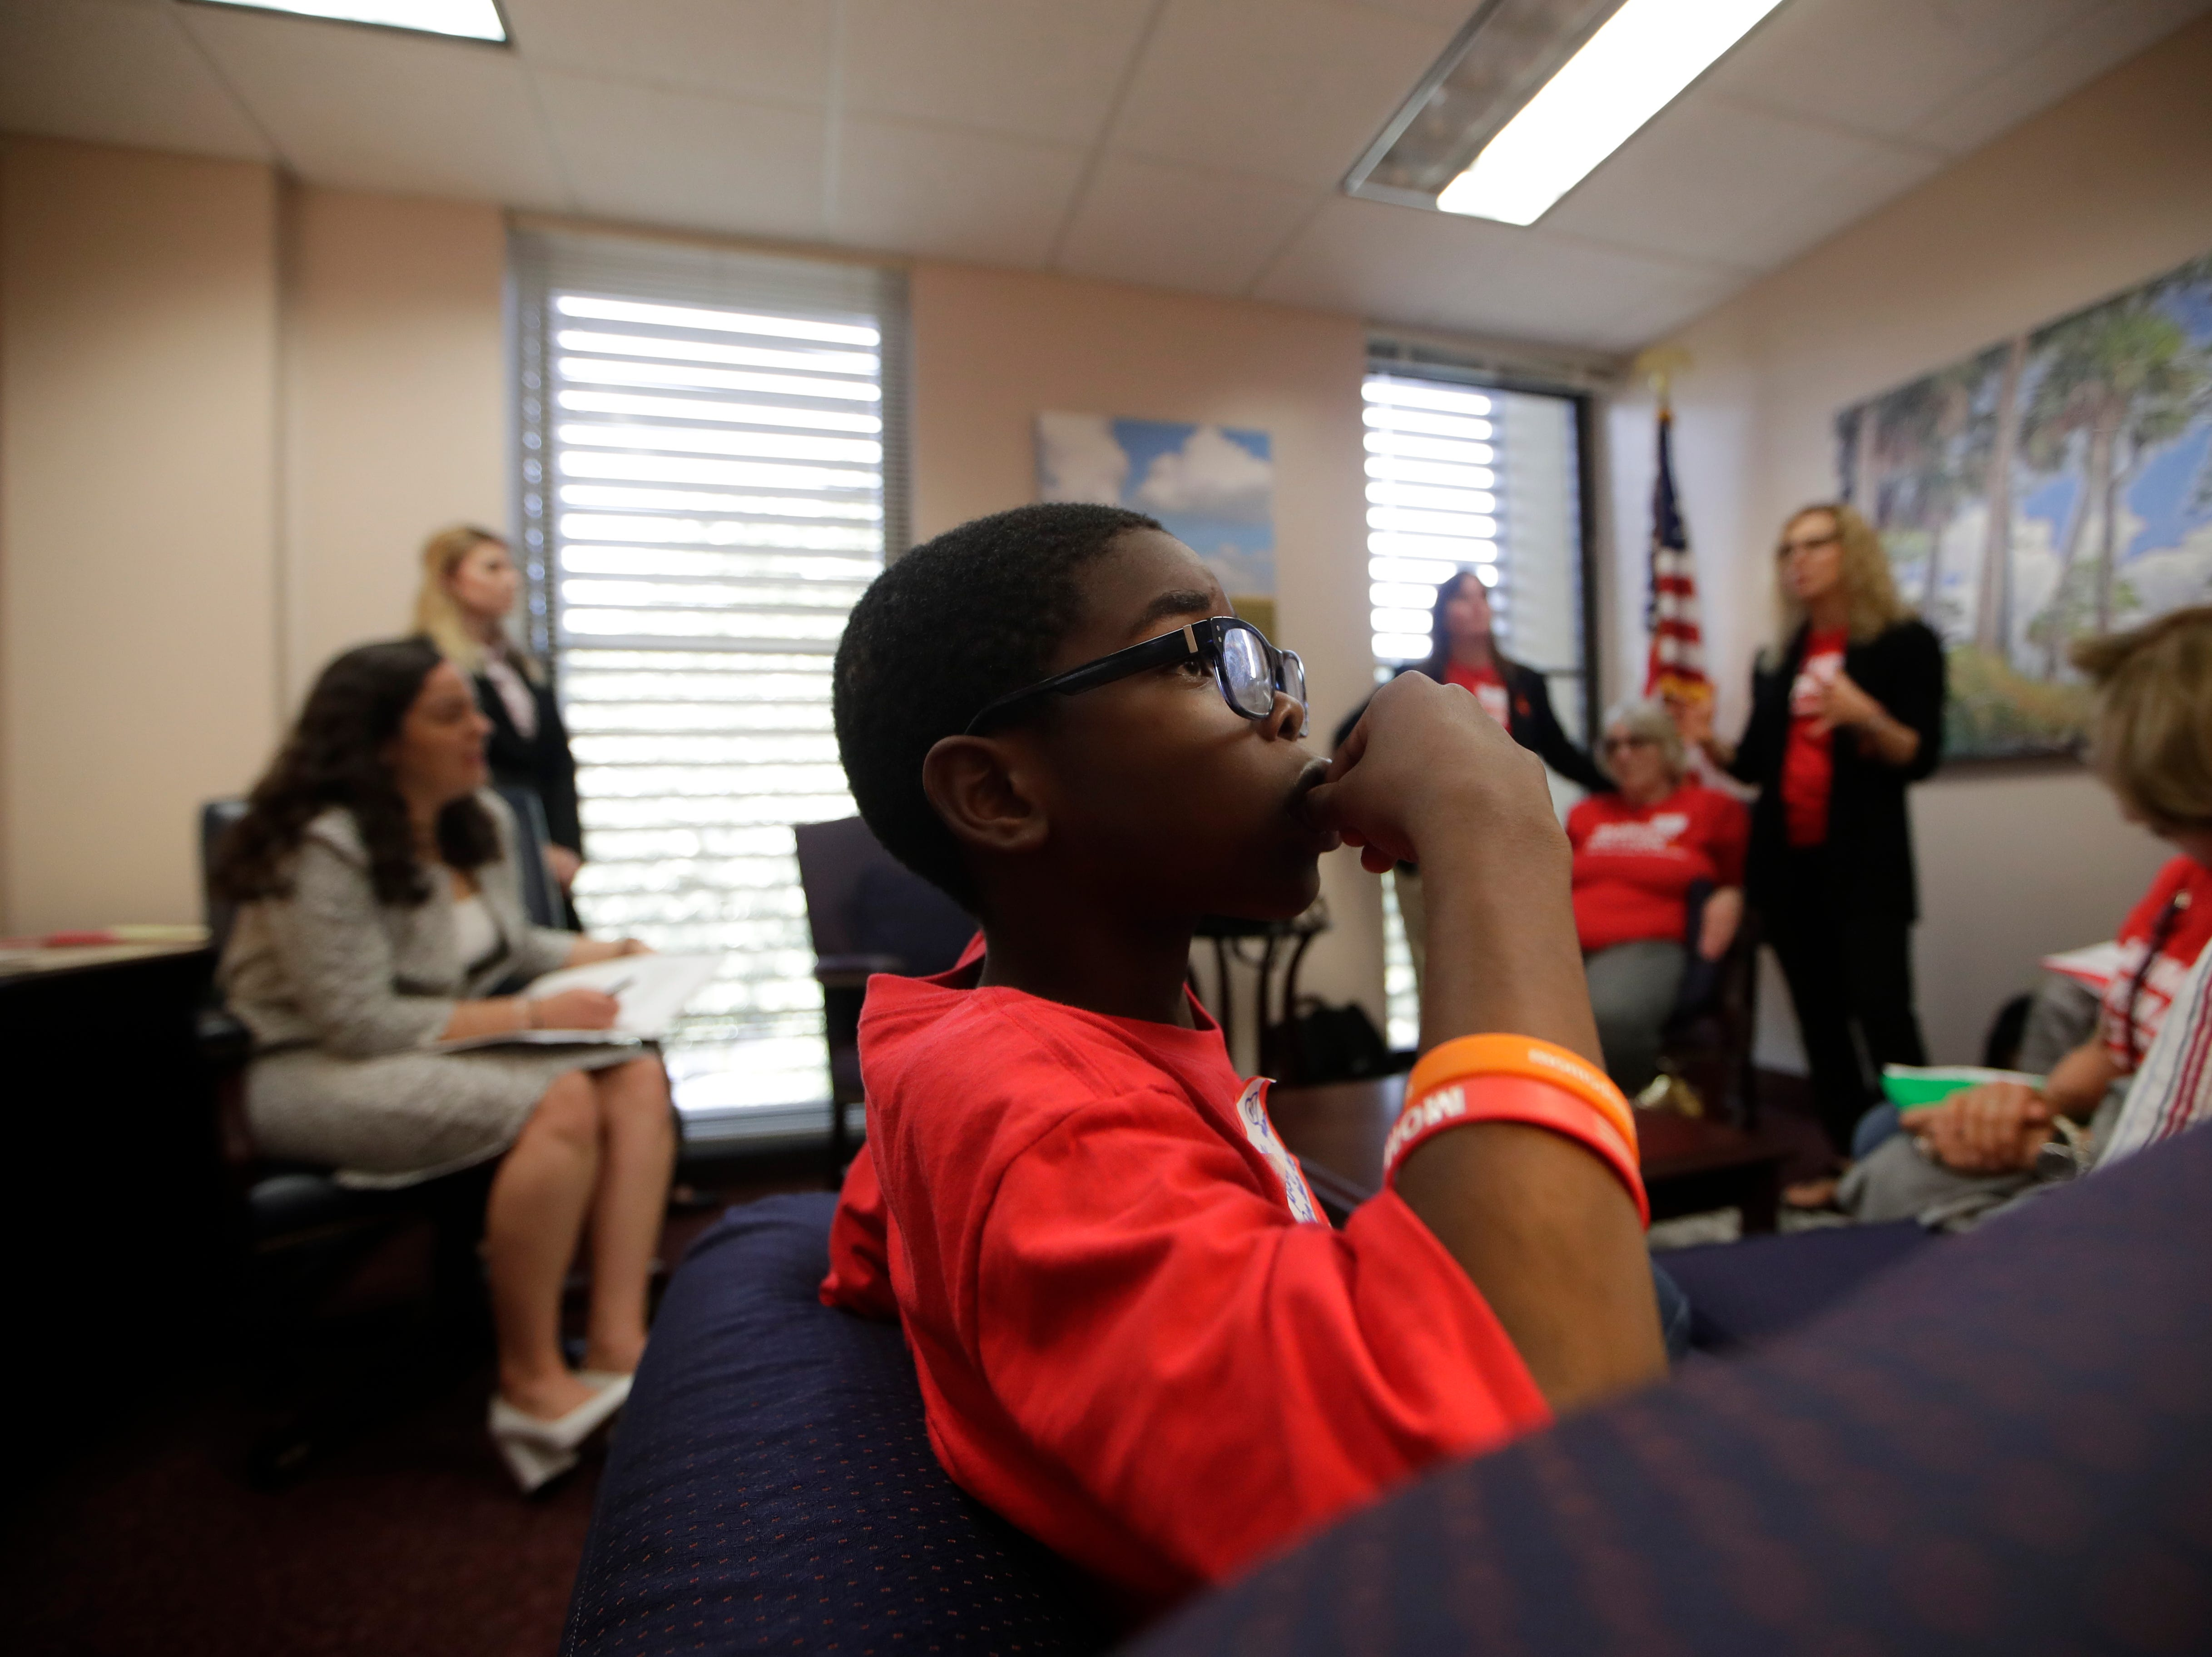 Bryce Mckoy, 9, sucks on a Jolly Rancher while his mother Teisha Mckoy and a group from Mothers Demand Action speak to Karina Pereira, a legislative assistant to Rep. Kirstin Jacobs in her office at the Capitol Wednesday, Feb. 6, 2019. Over 500 members of Moms Demand Action from across Florida met with lawmakers at the Capitol to lobby for stricter gun laws.